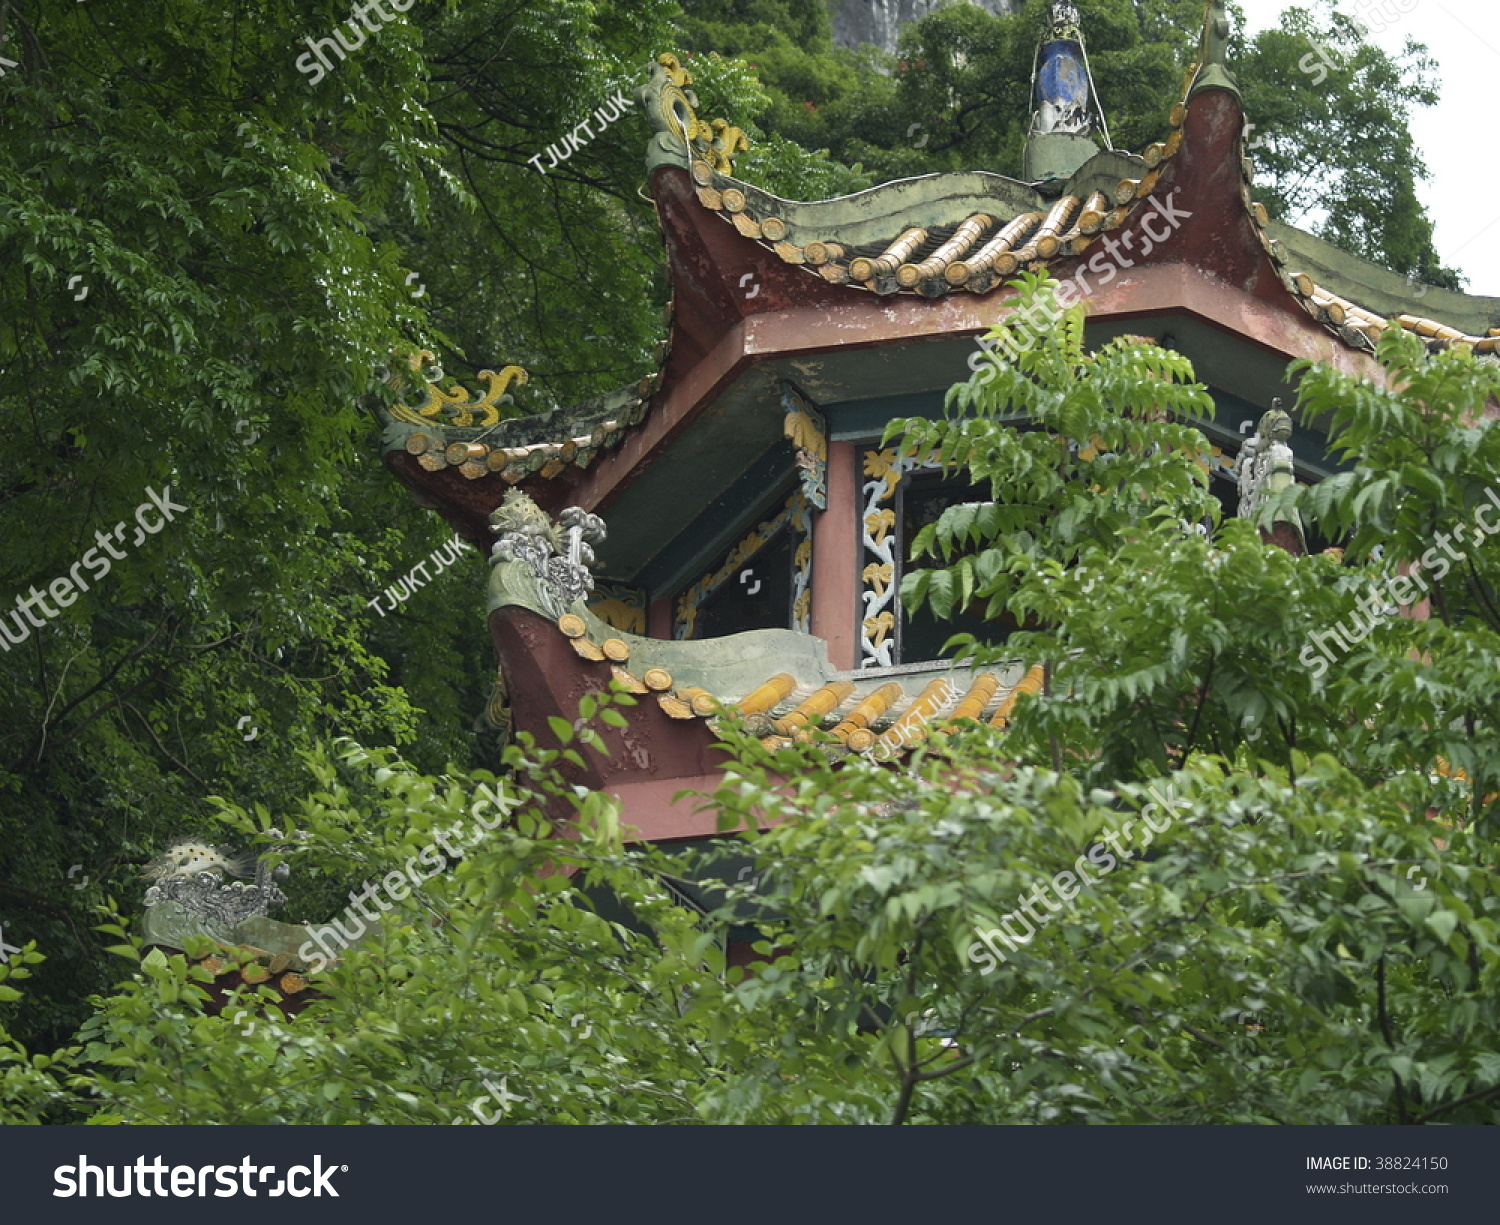 The Oriental Gazebo In Yangshuo County, China Stock Photo 38824150 ...